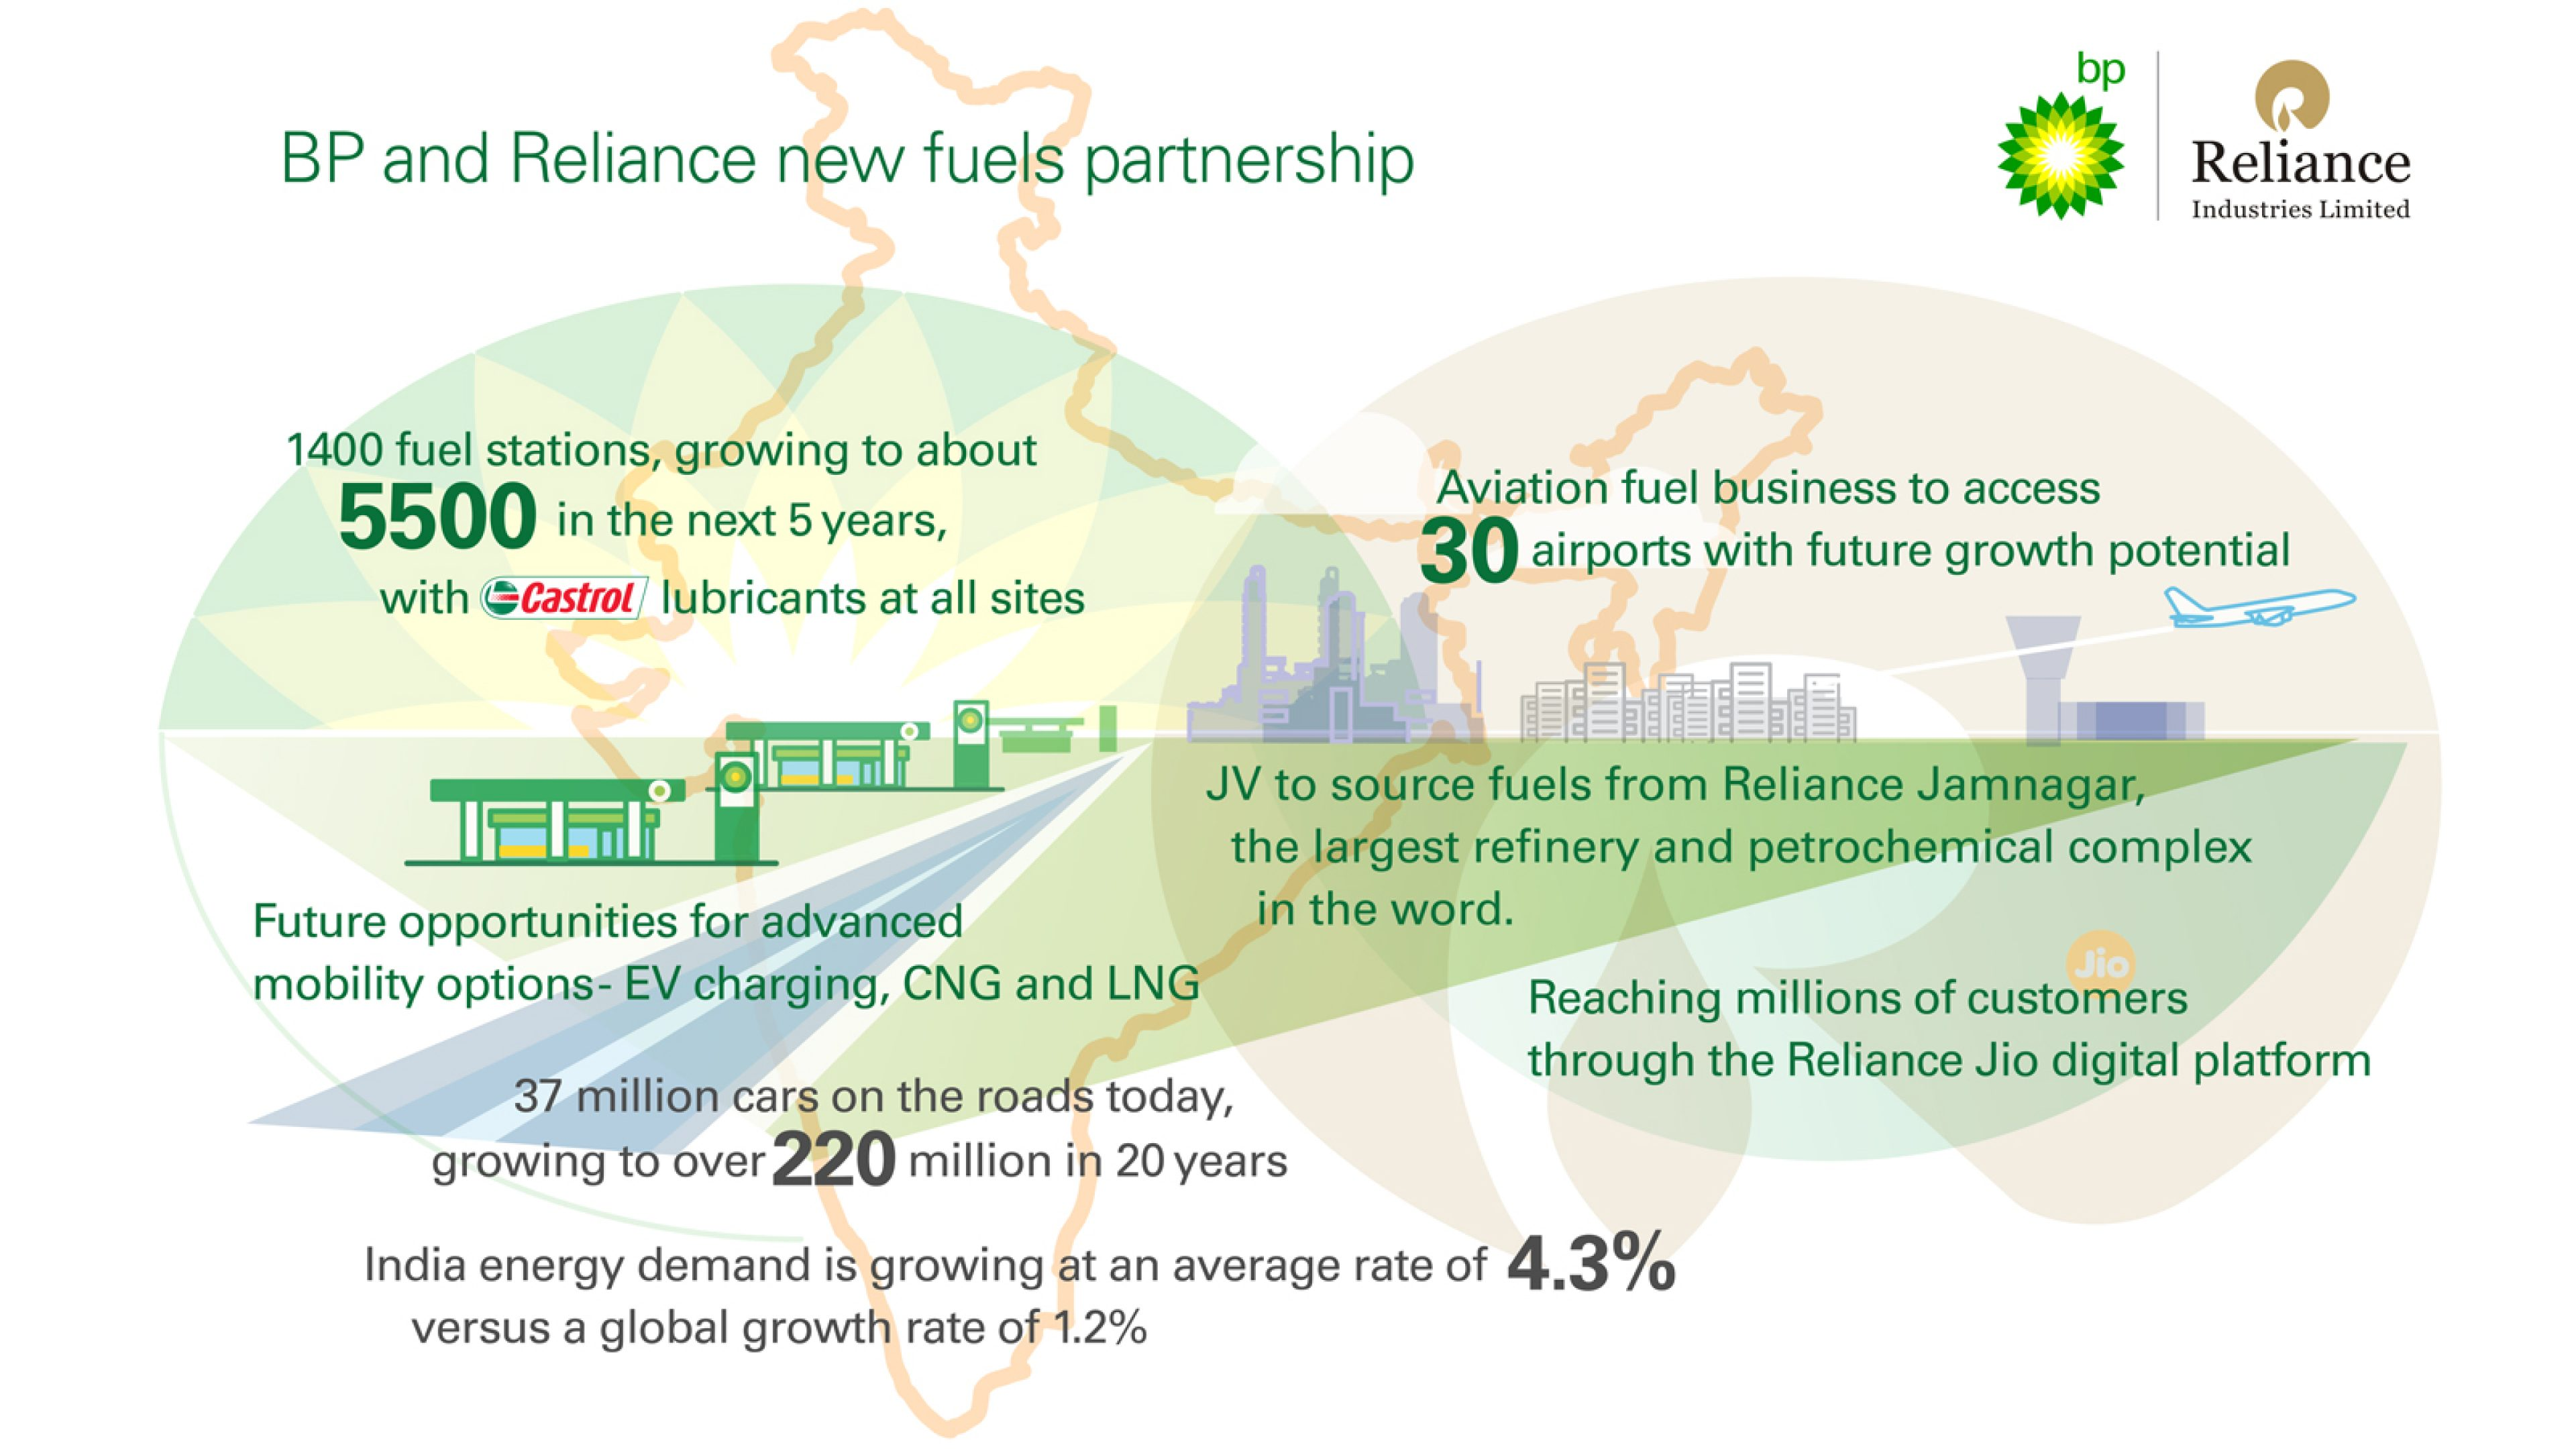 Reliance and BP to create major world-class fuels partnership | News